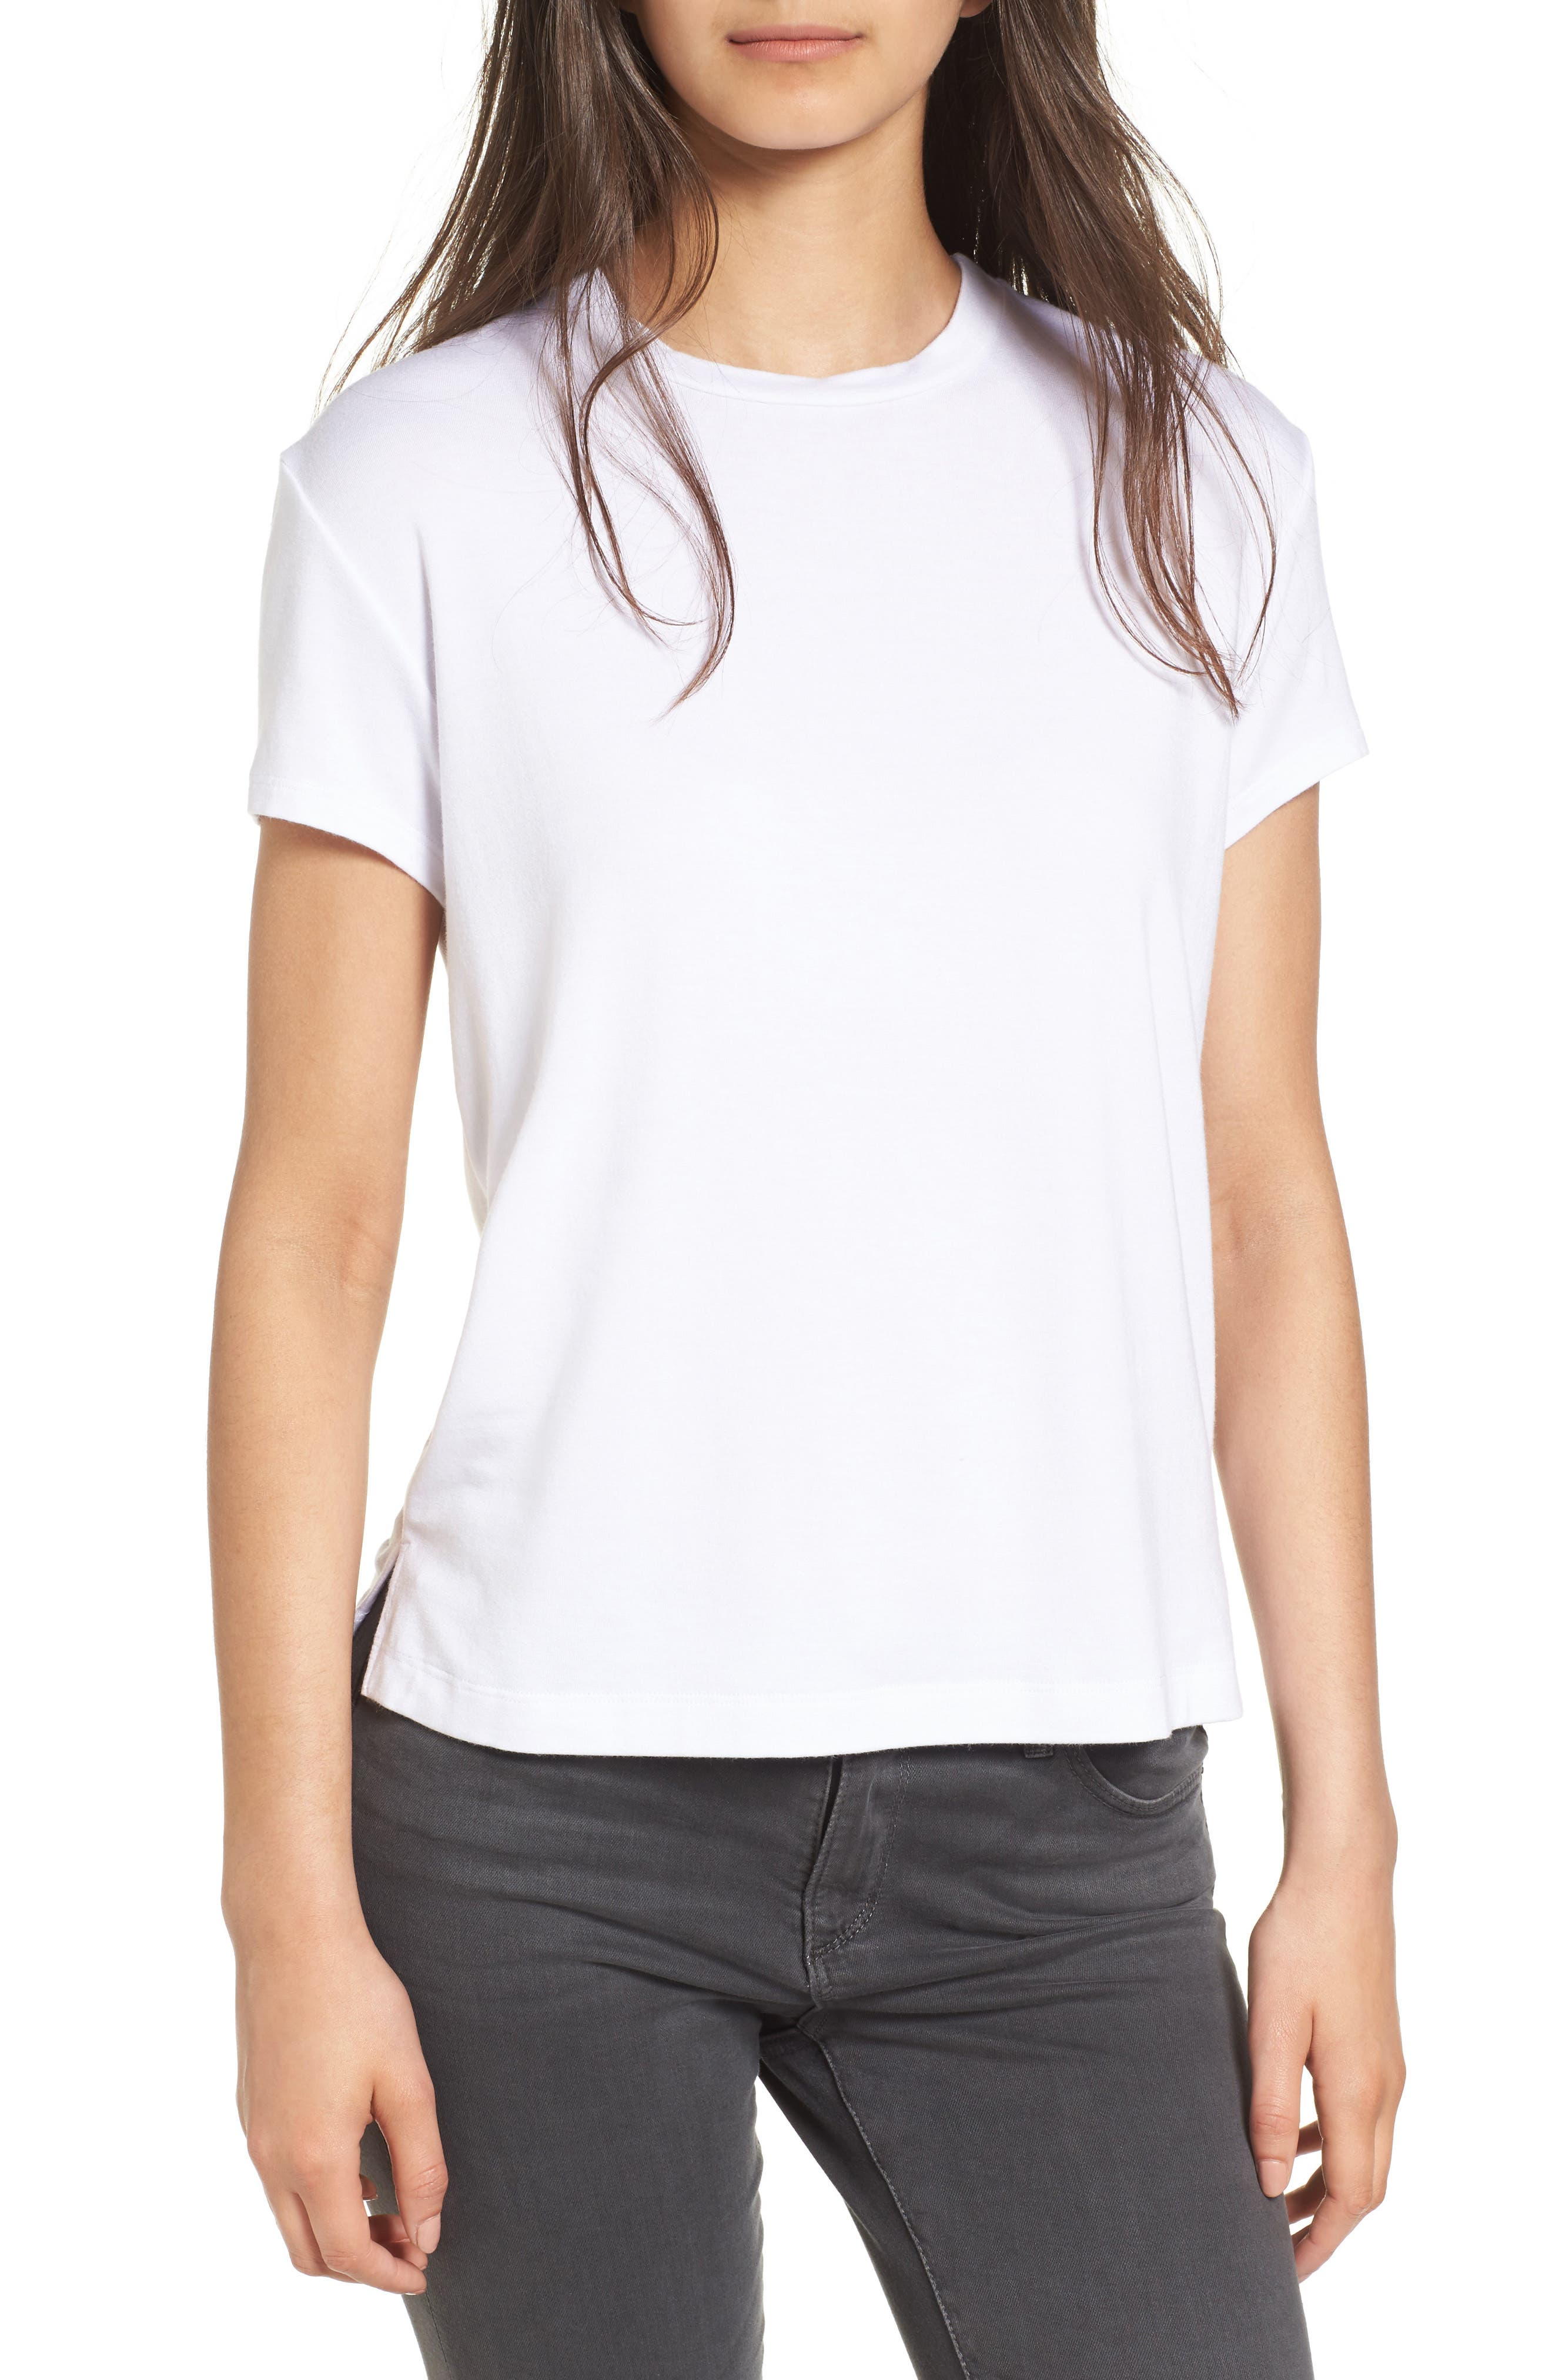 AMOUR VERT Casey Tee, Main, color, WHITE